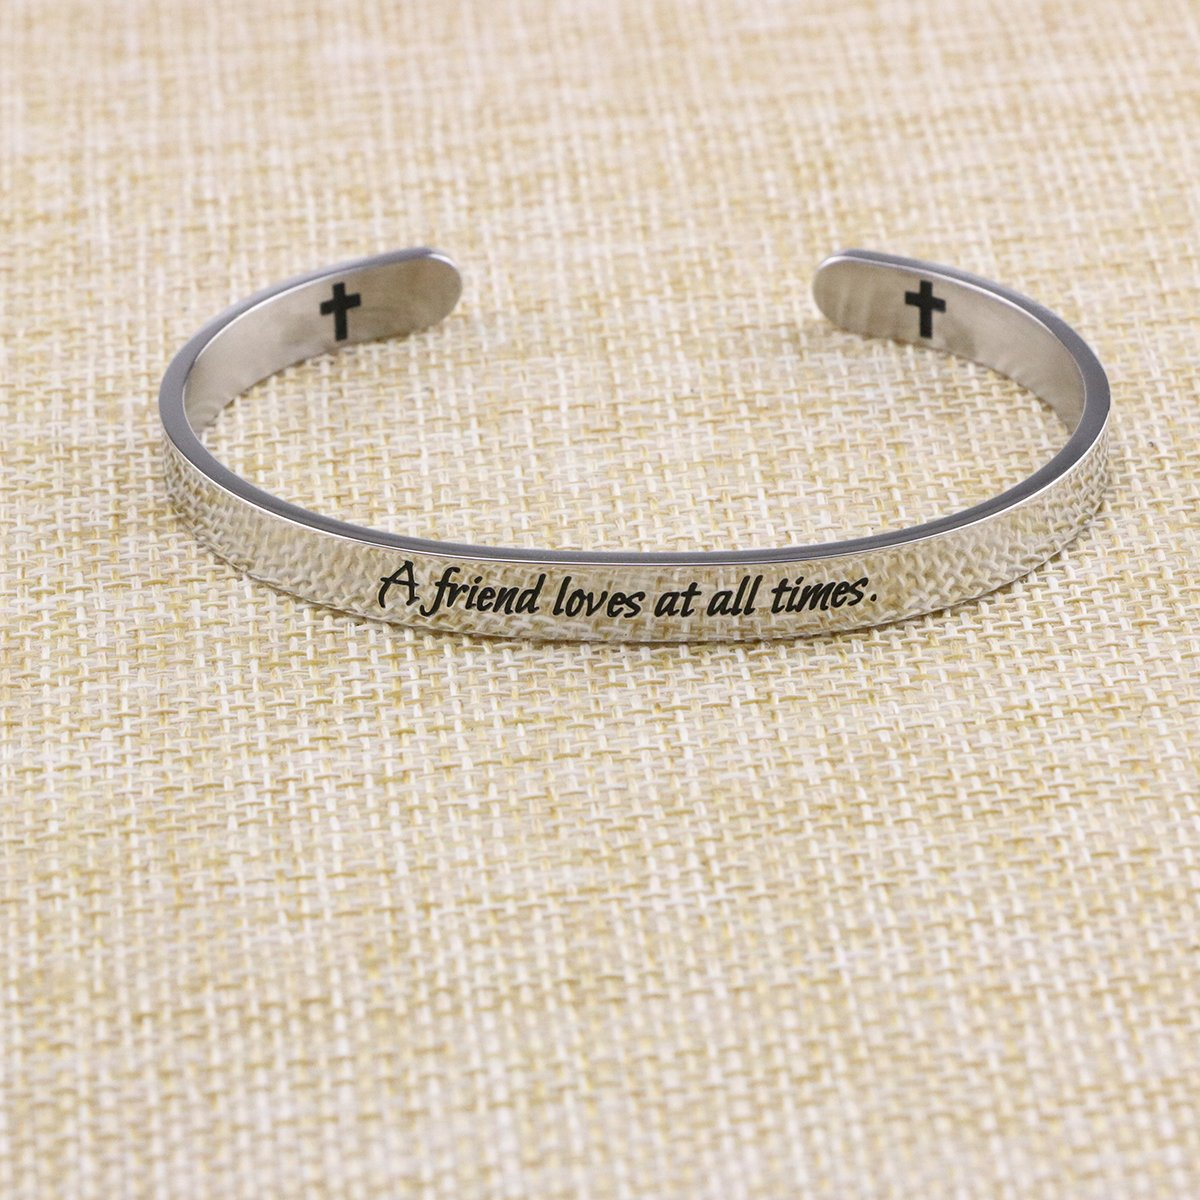 Yiyang Friendship Bracelets Chirstian Jewelry Positive Cuff Bangle Memorial Gift Proverb Engraved A Friend Loves at All Times by Yiyang (Image #3)